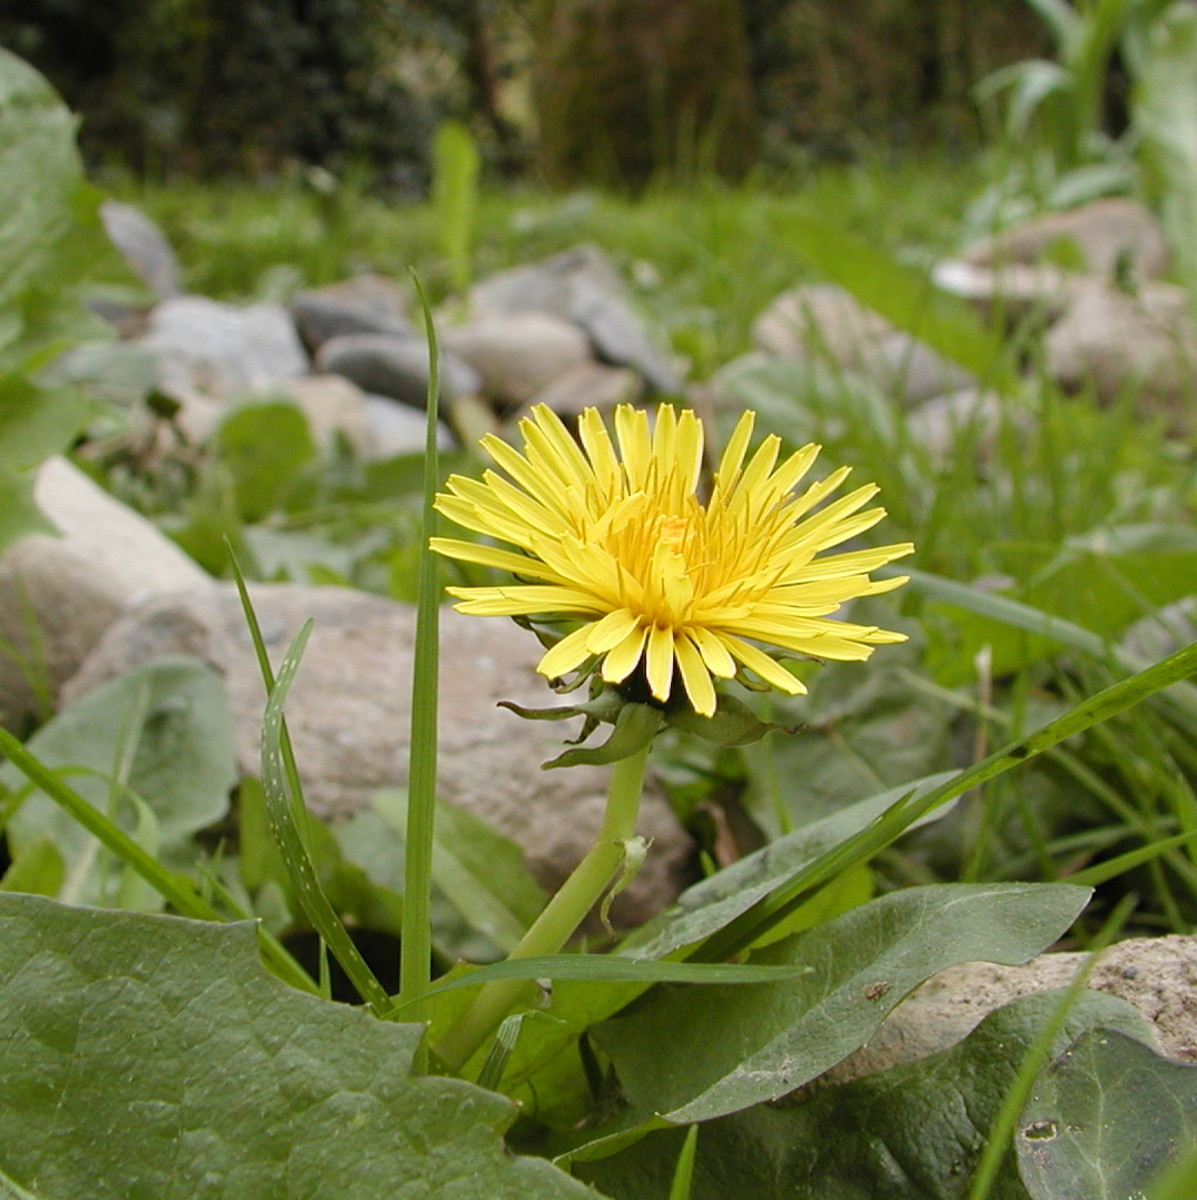 The dandelion is one of the most common and recognisable garden weeds.